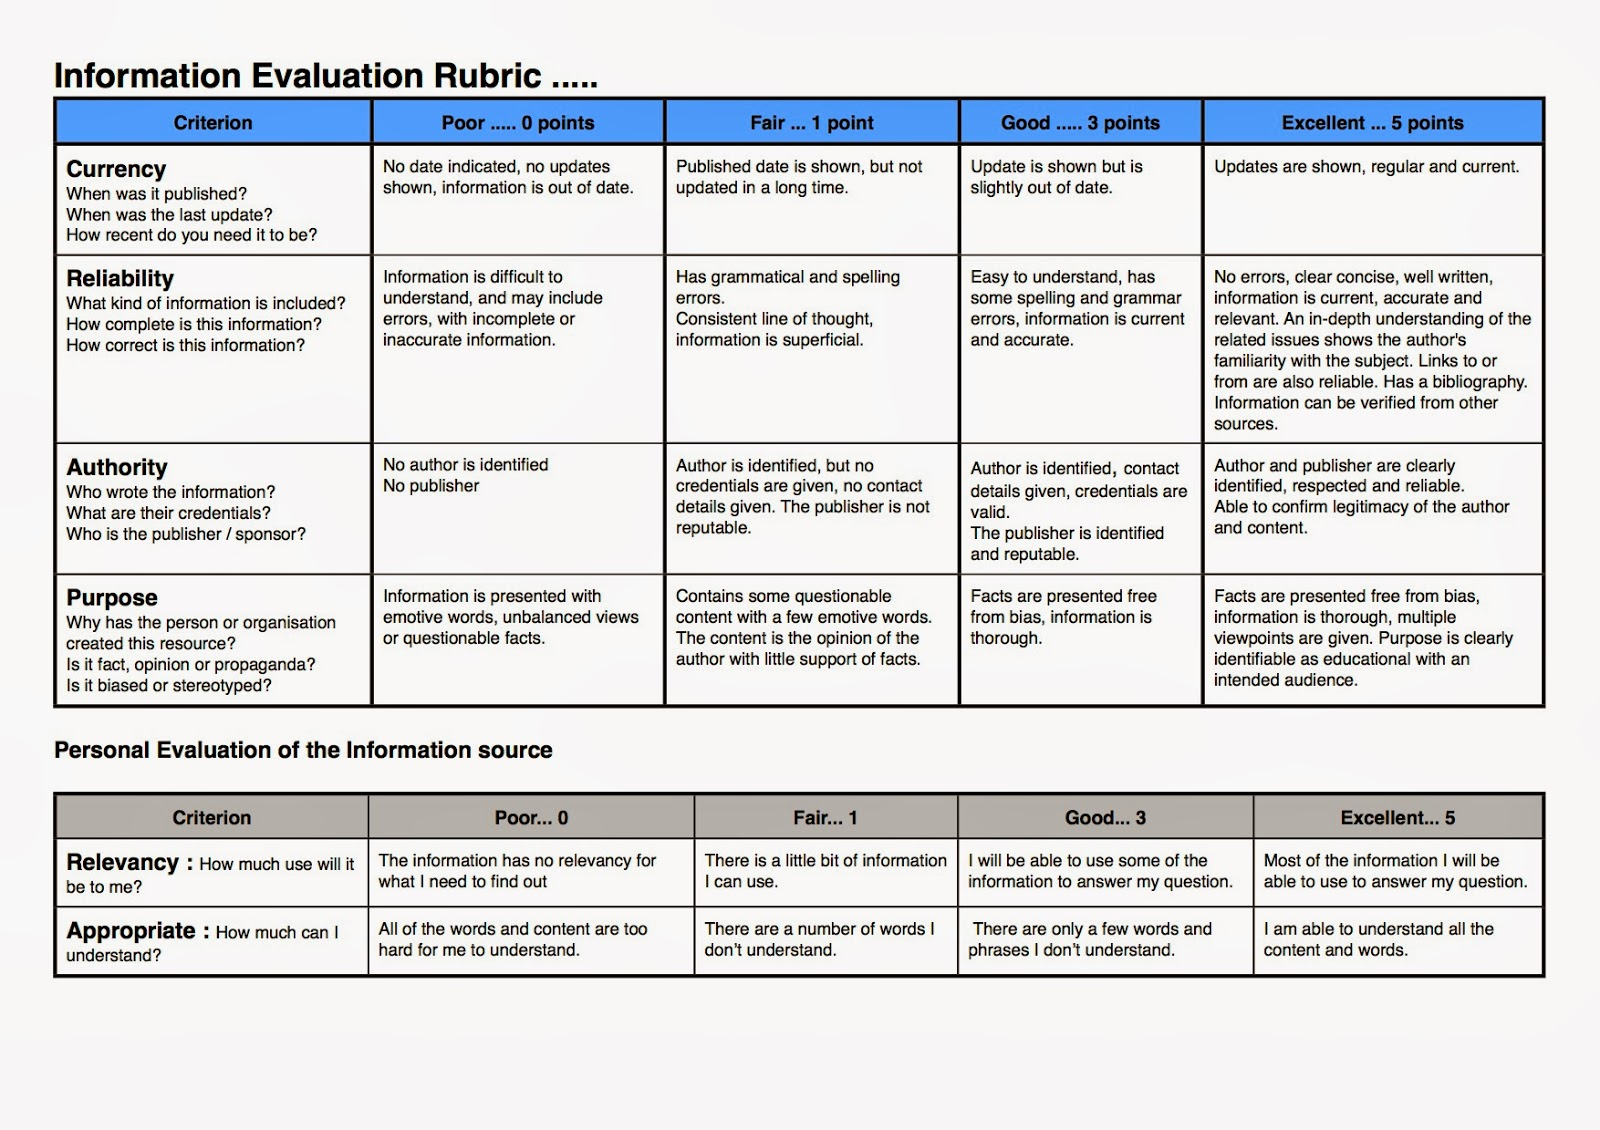 research essay grading rubric Analytical rubrics assign a specific this grade sheet is adapted from one devised by dr ruth franks for a long research paper in her undergraduate research.